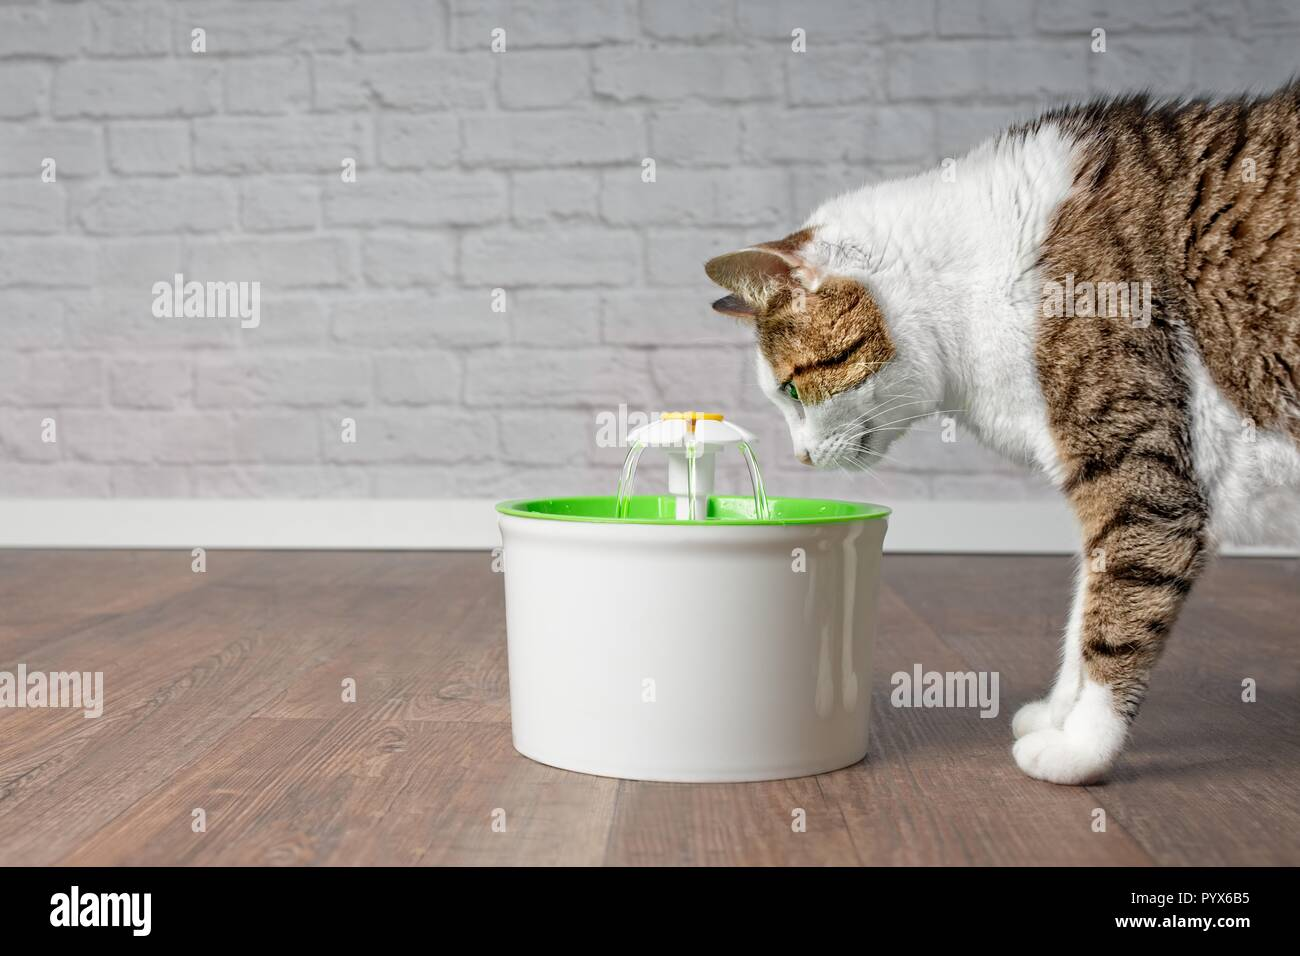 Thirsty tabby cat looking curious to a pet drinking fountain. Side view with copy space. - Stock Image